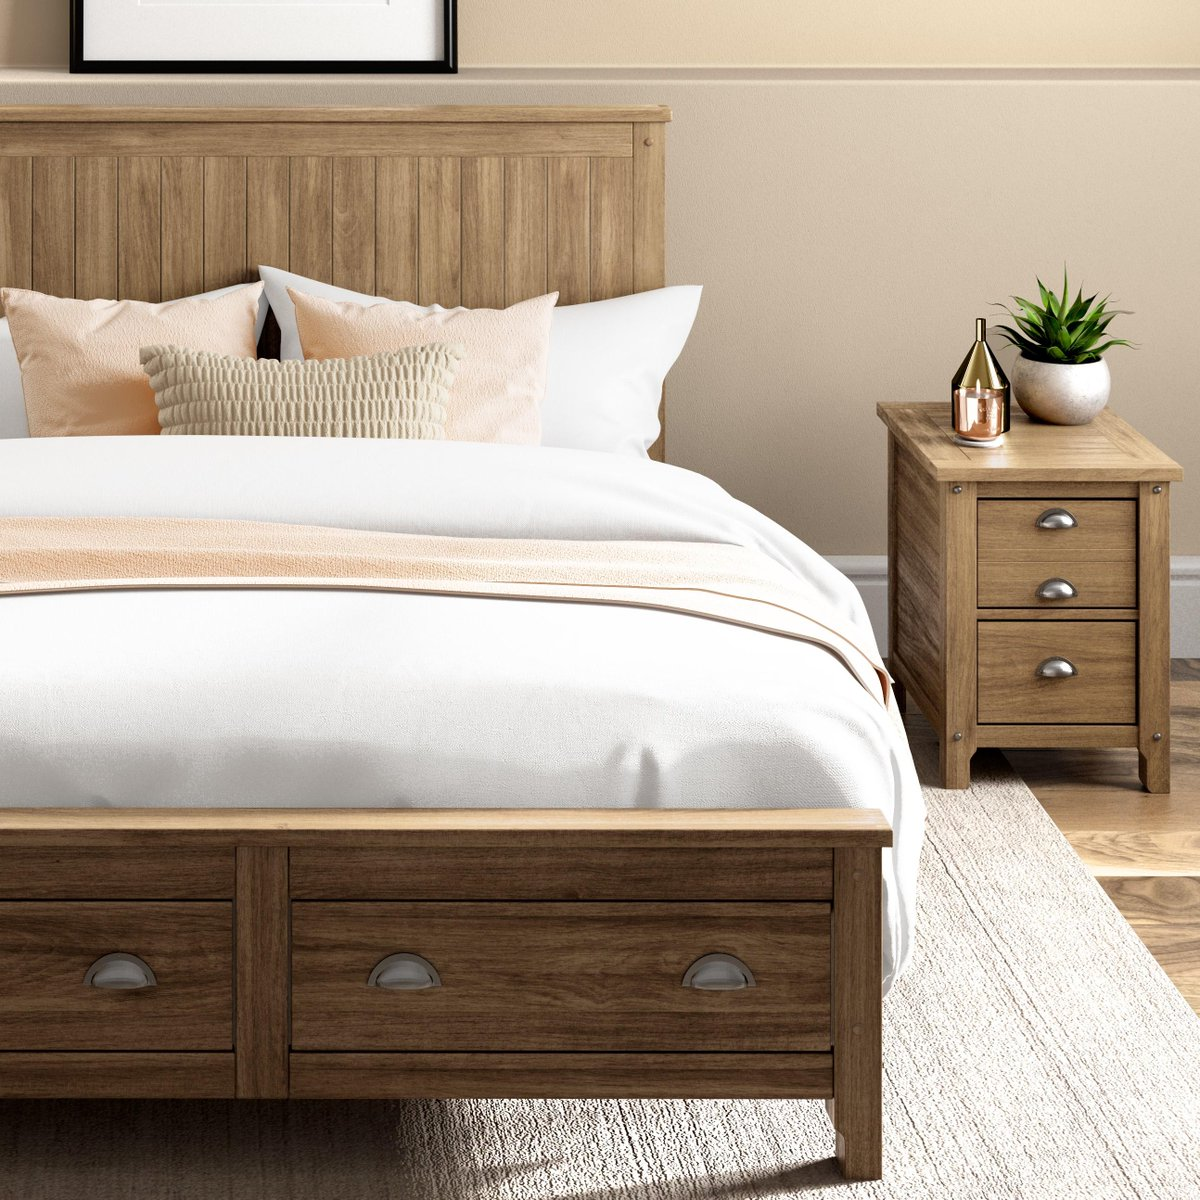 Wooden Beds Bensons For Beds On Twitter